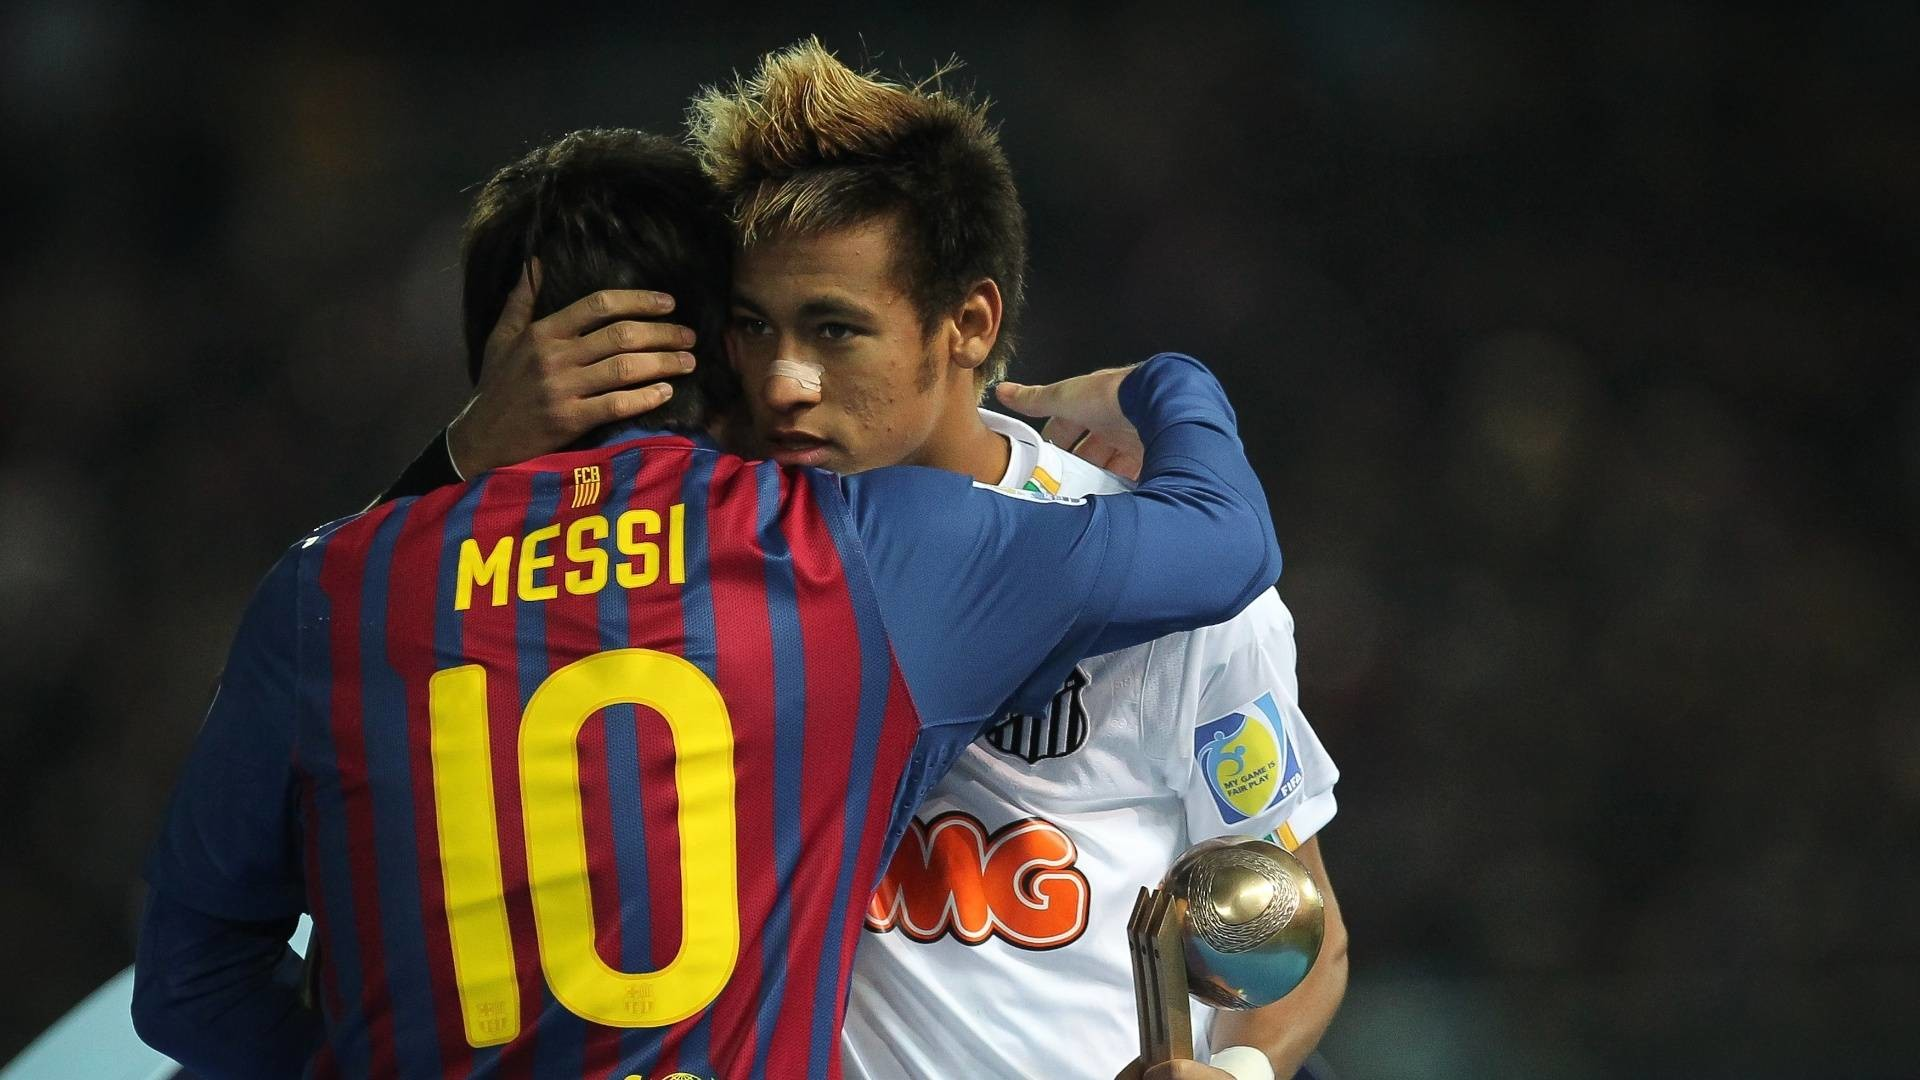 38570-soccer-we-are-frnds Neymar wallpaper HD free wallpapers .